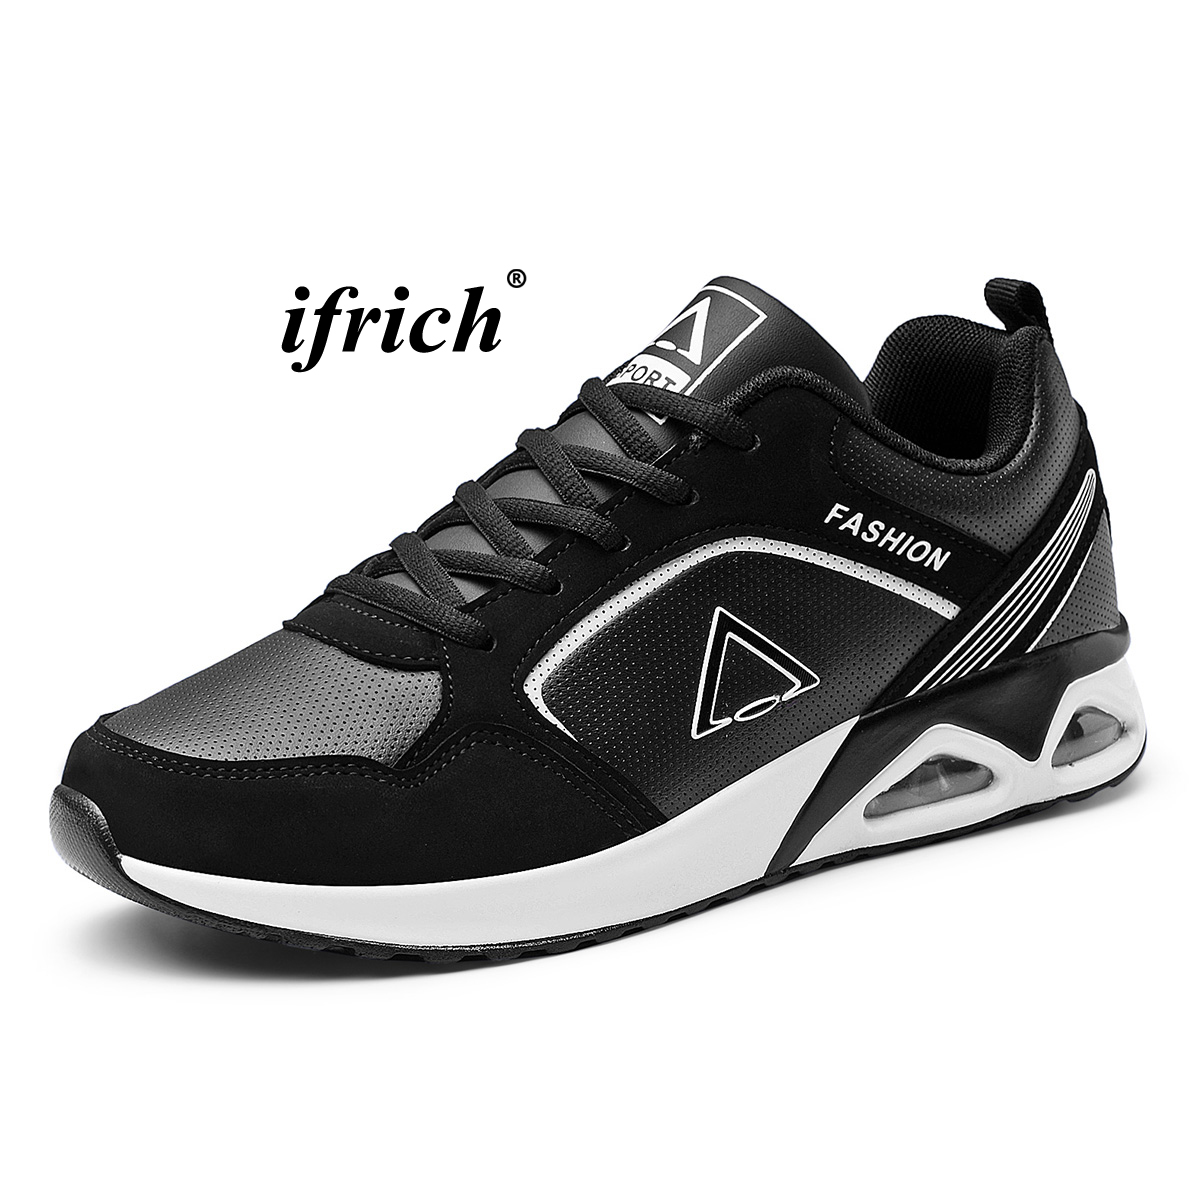 Man Running Sneakers Black Blue Mens Tracking Sneakers Spring Autumn Gym Trainer Shoes Men Comfortable Sneakers for Male